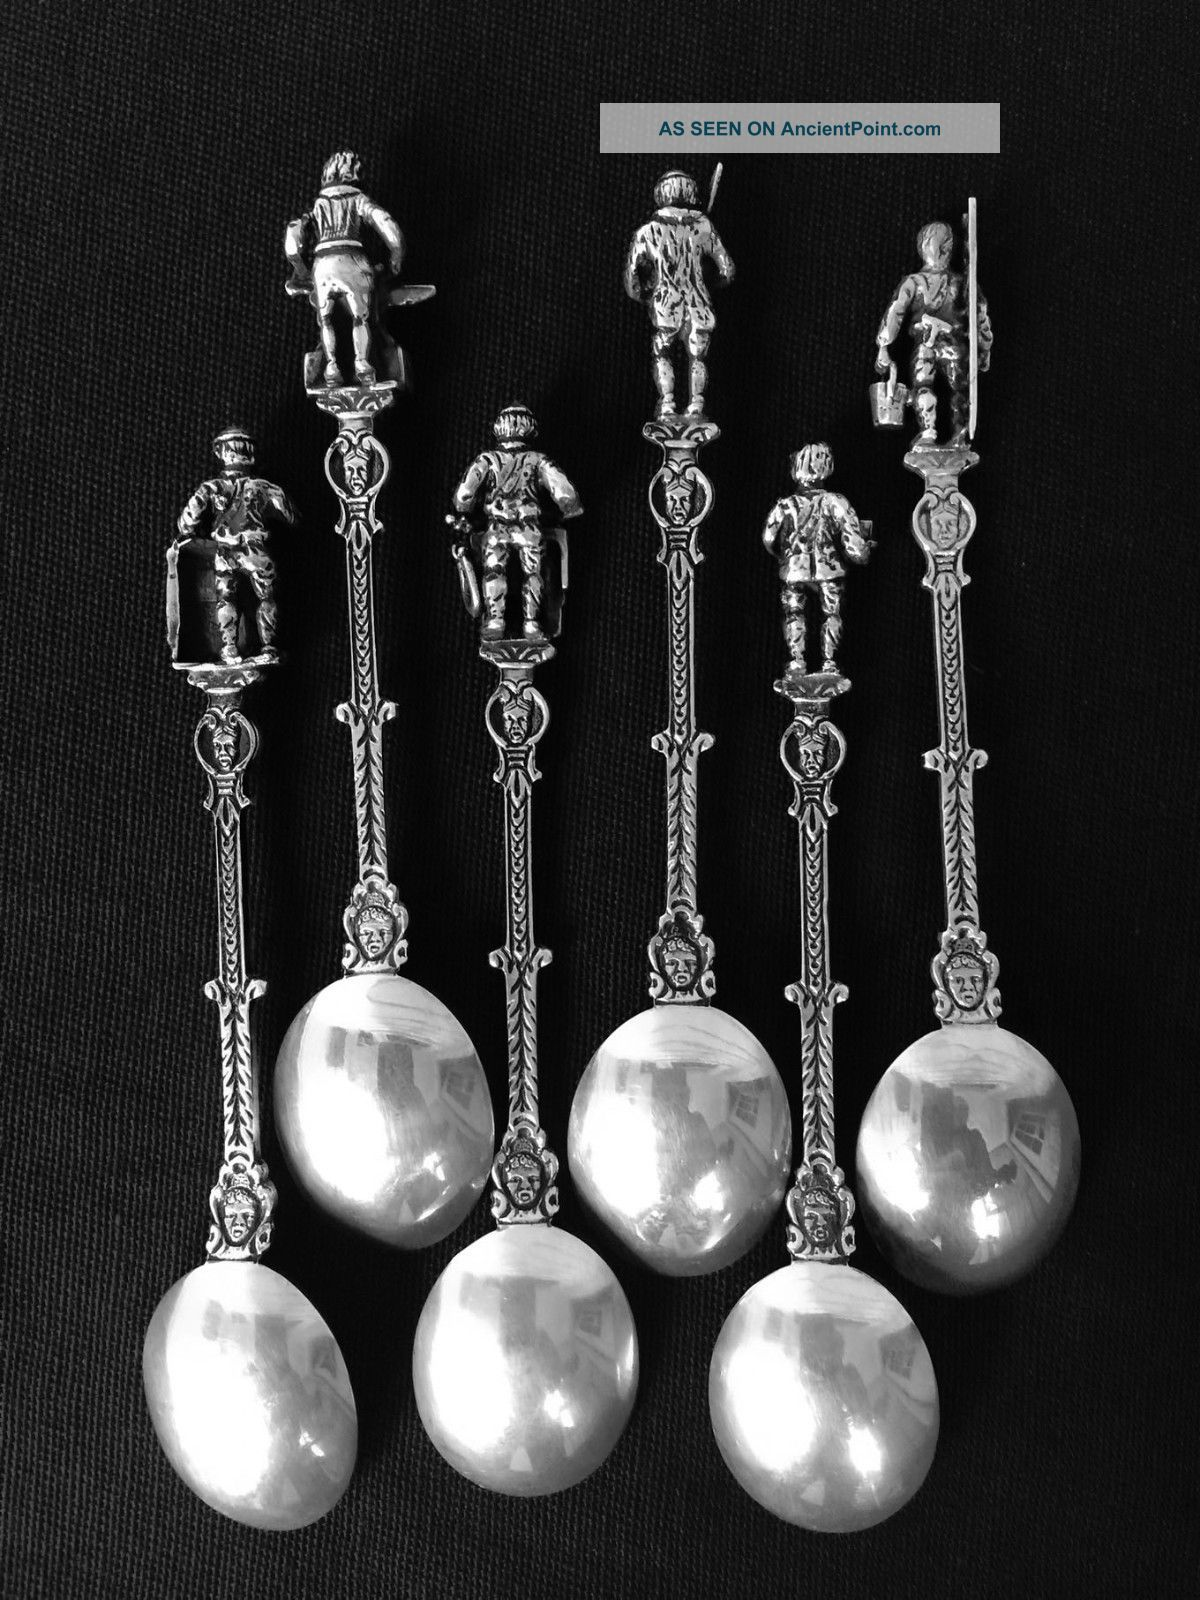 Rare 6 Dutch 835 Silver Coffee Spoons W/tradesman Finials Other Antique Non-U.S. Silver photo